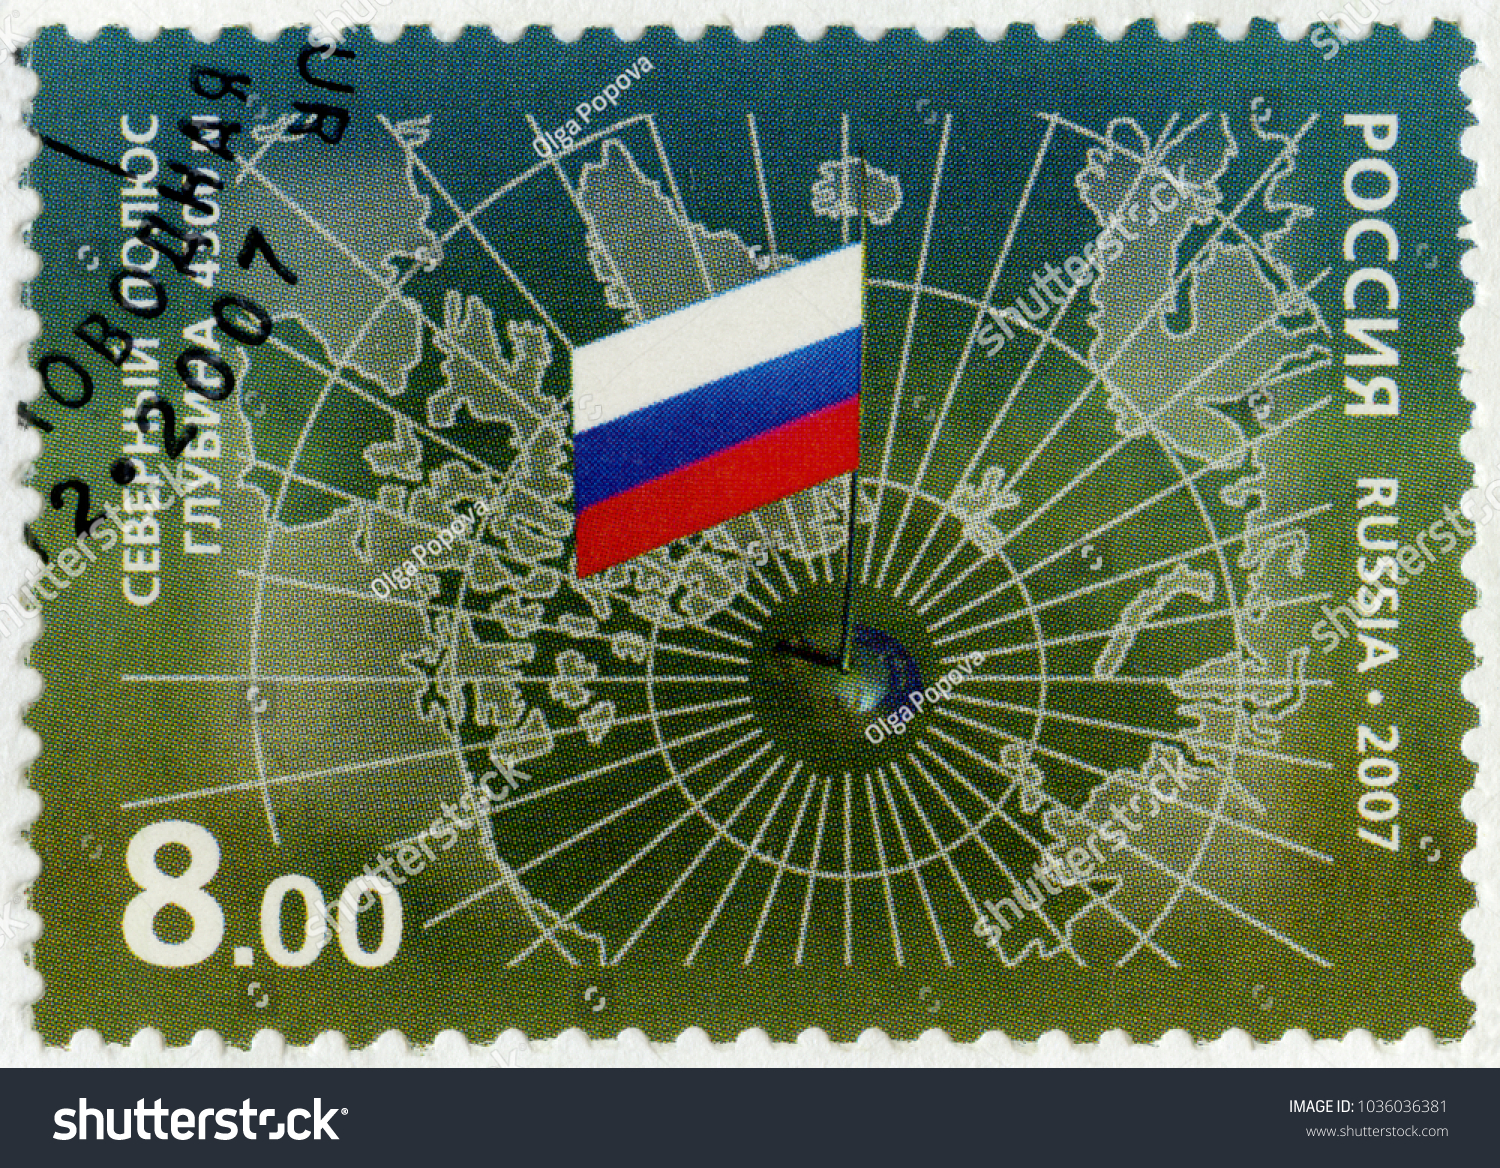 moscow russia december 07 2007 stamp stock photo edit now 1036036381 shutterstock